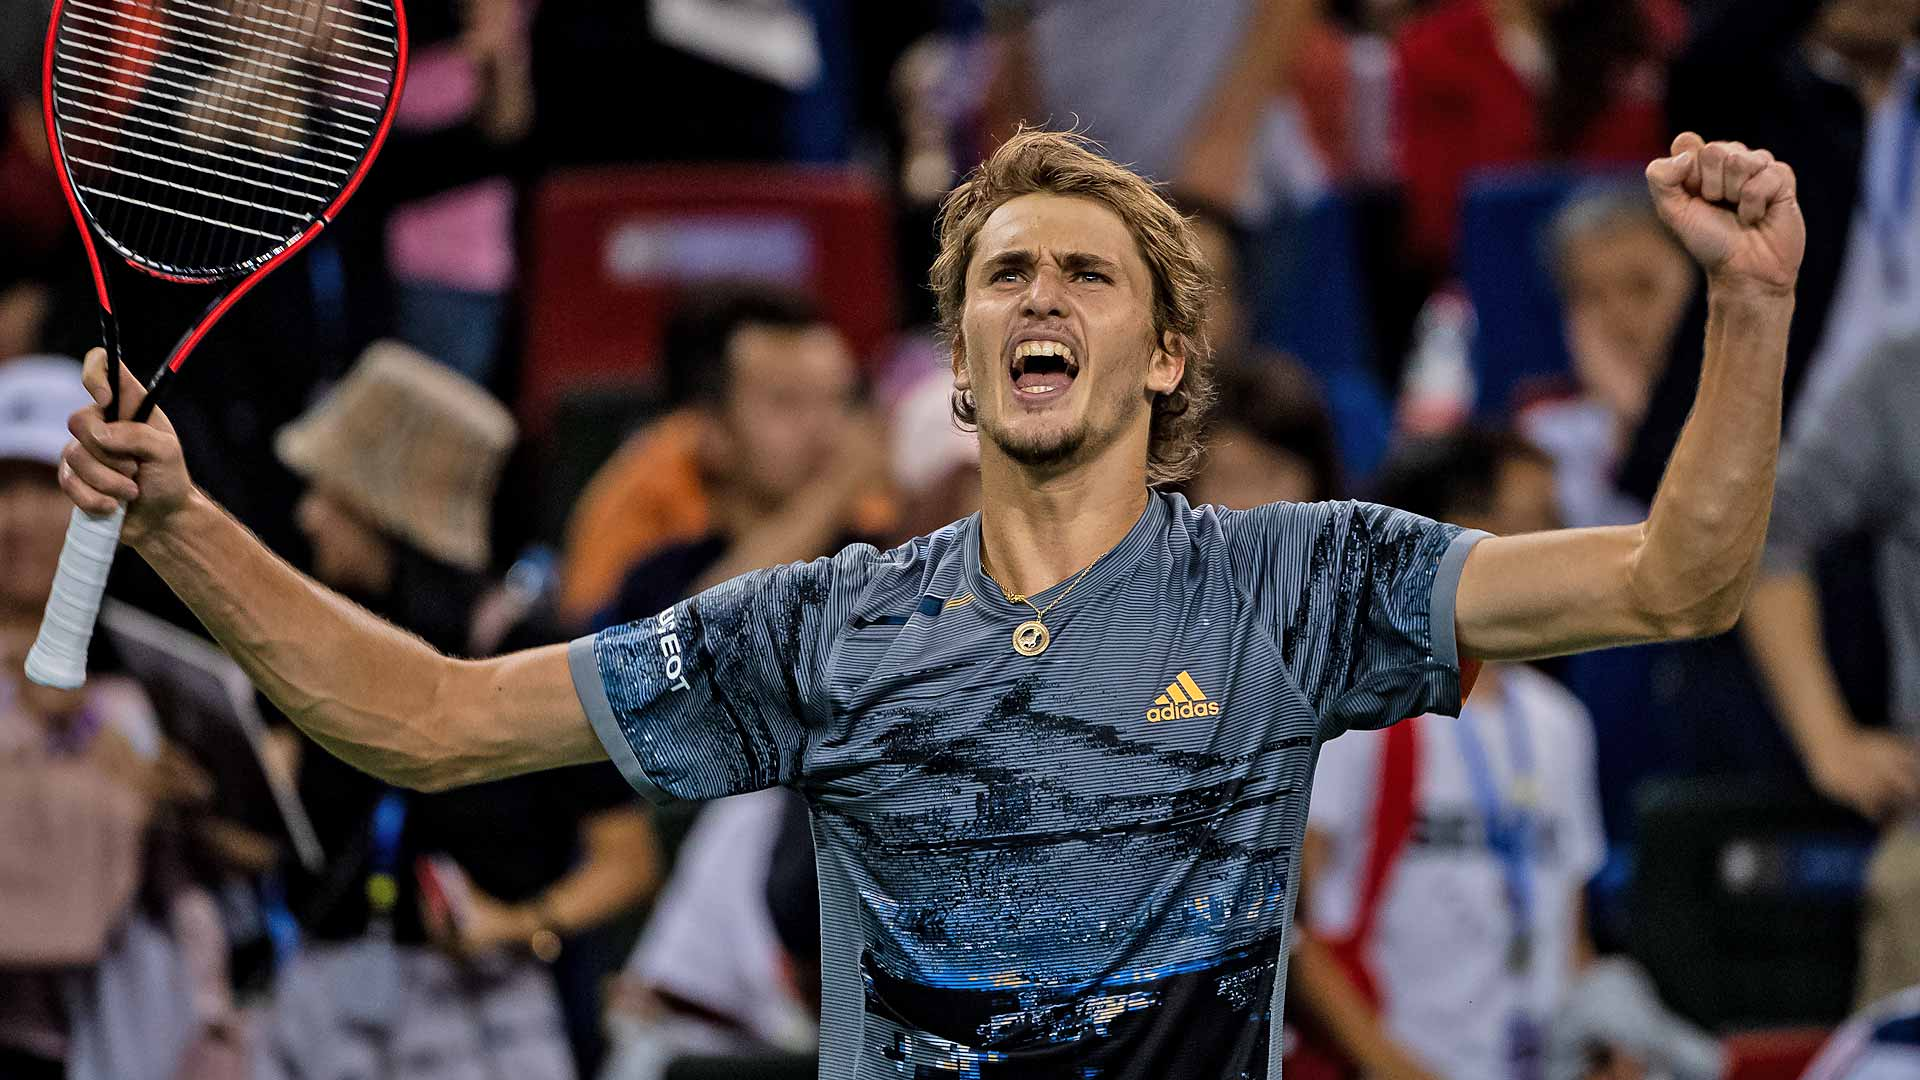 Alexander Zverev celebrates his three-set win against Roger Federer on Friday at the Rolex Shanghai Masters.